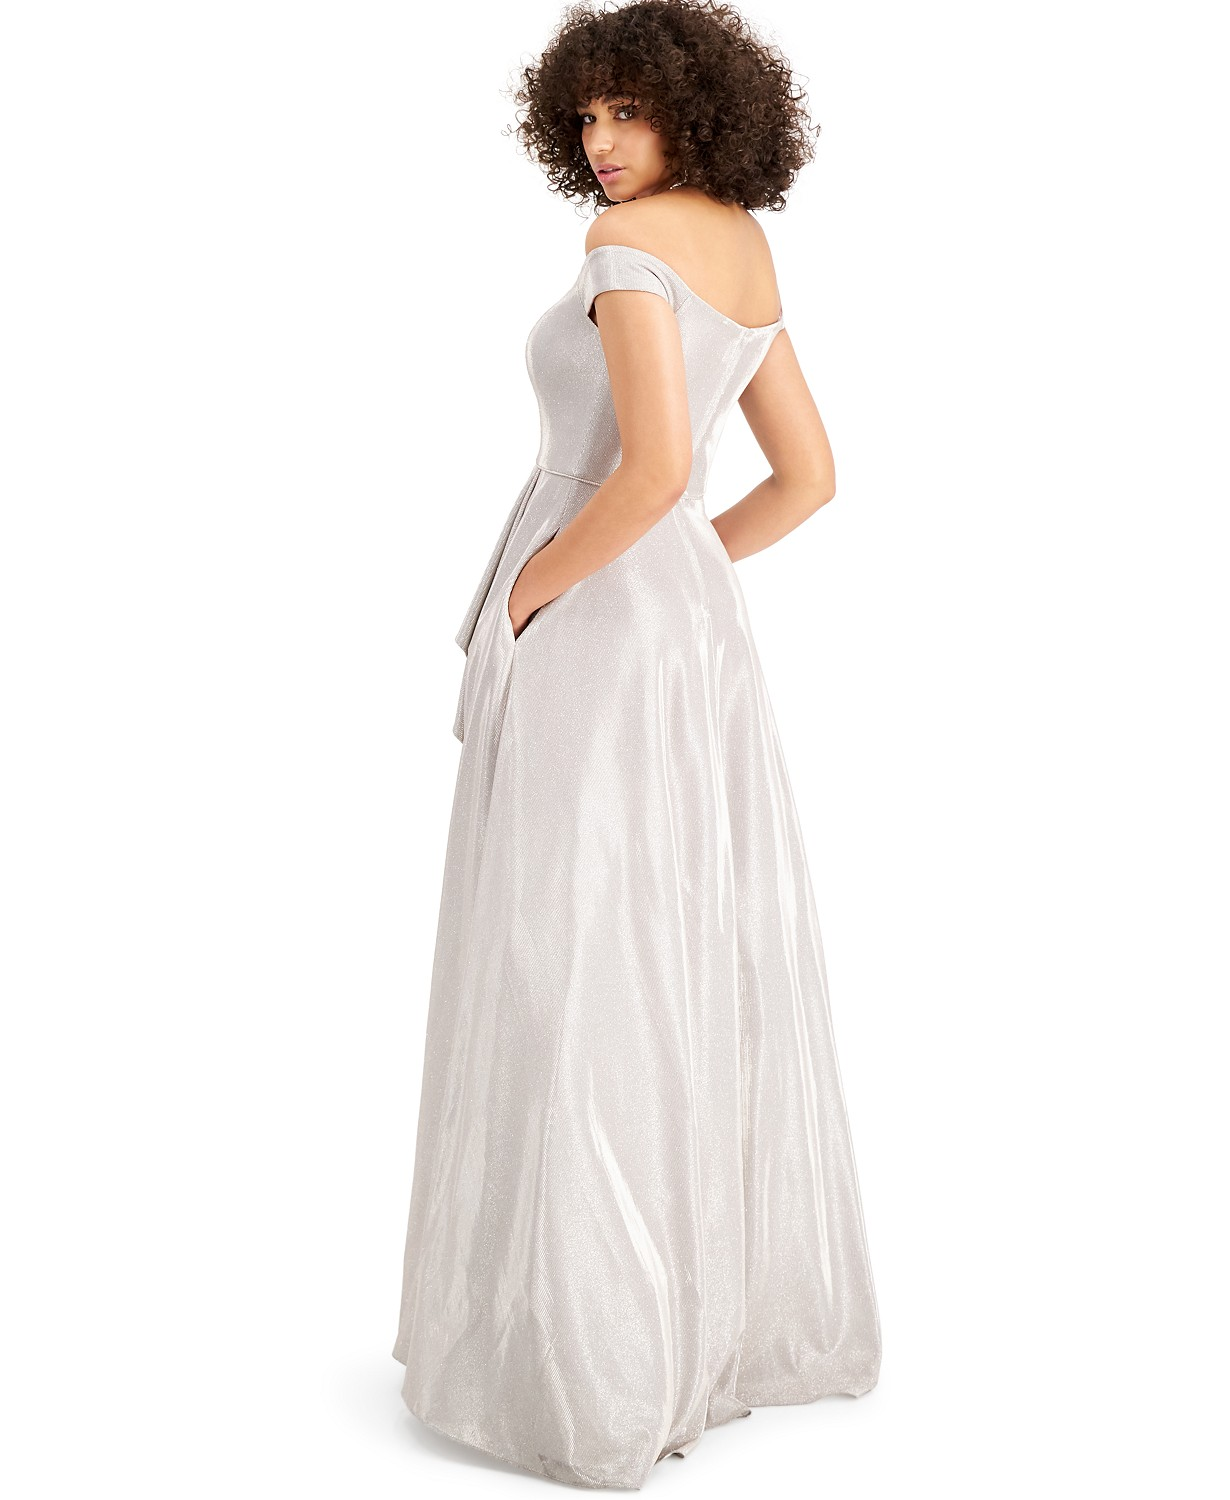 Macy's Prom Off the shoulder glitter Gown White color Back-side